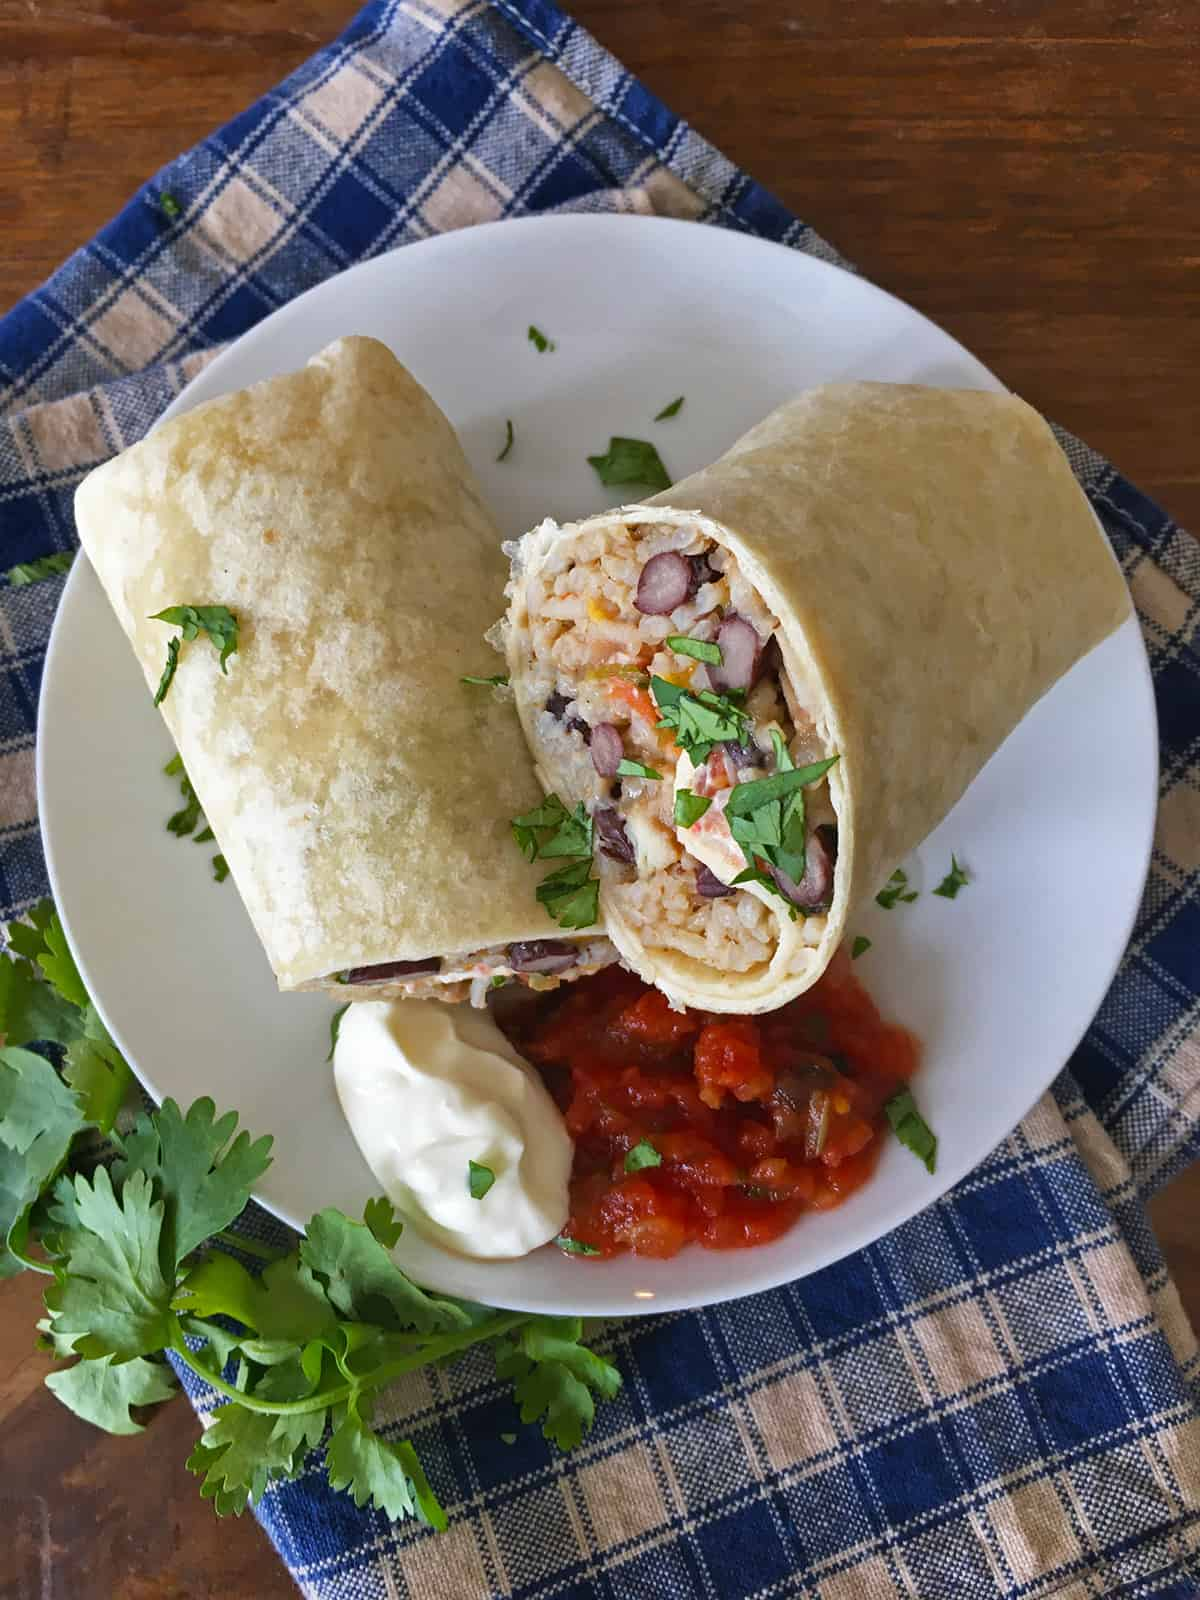 Chicken burrito with salsa and sour cream on a white plate with a blue and tan checkered napkin